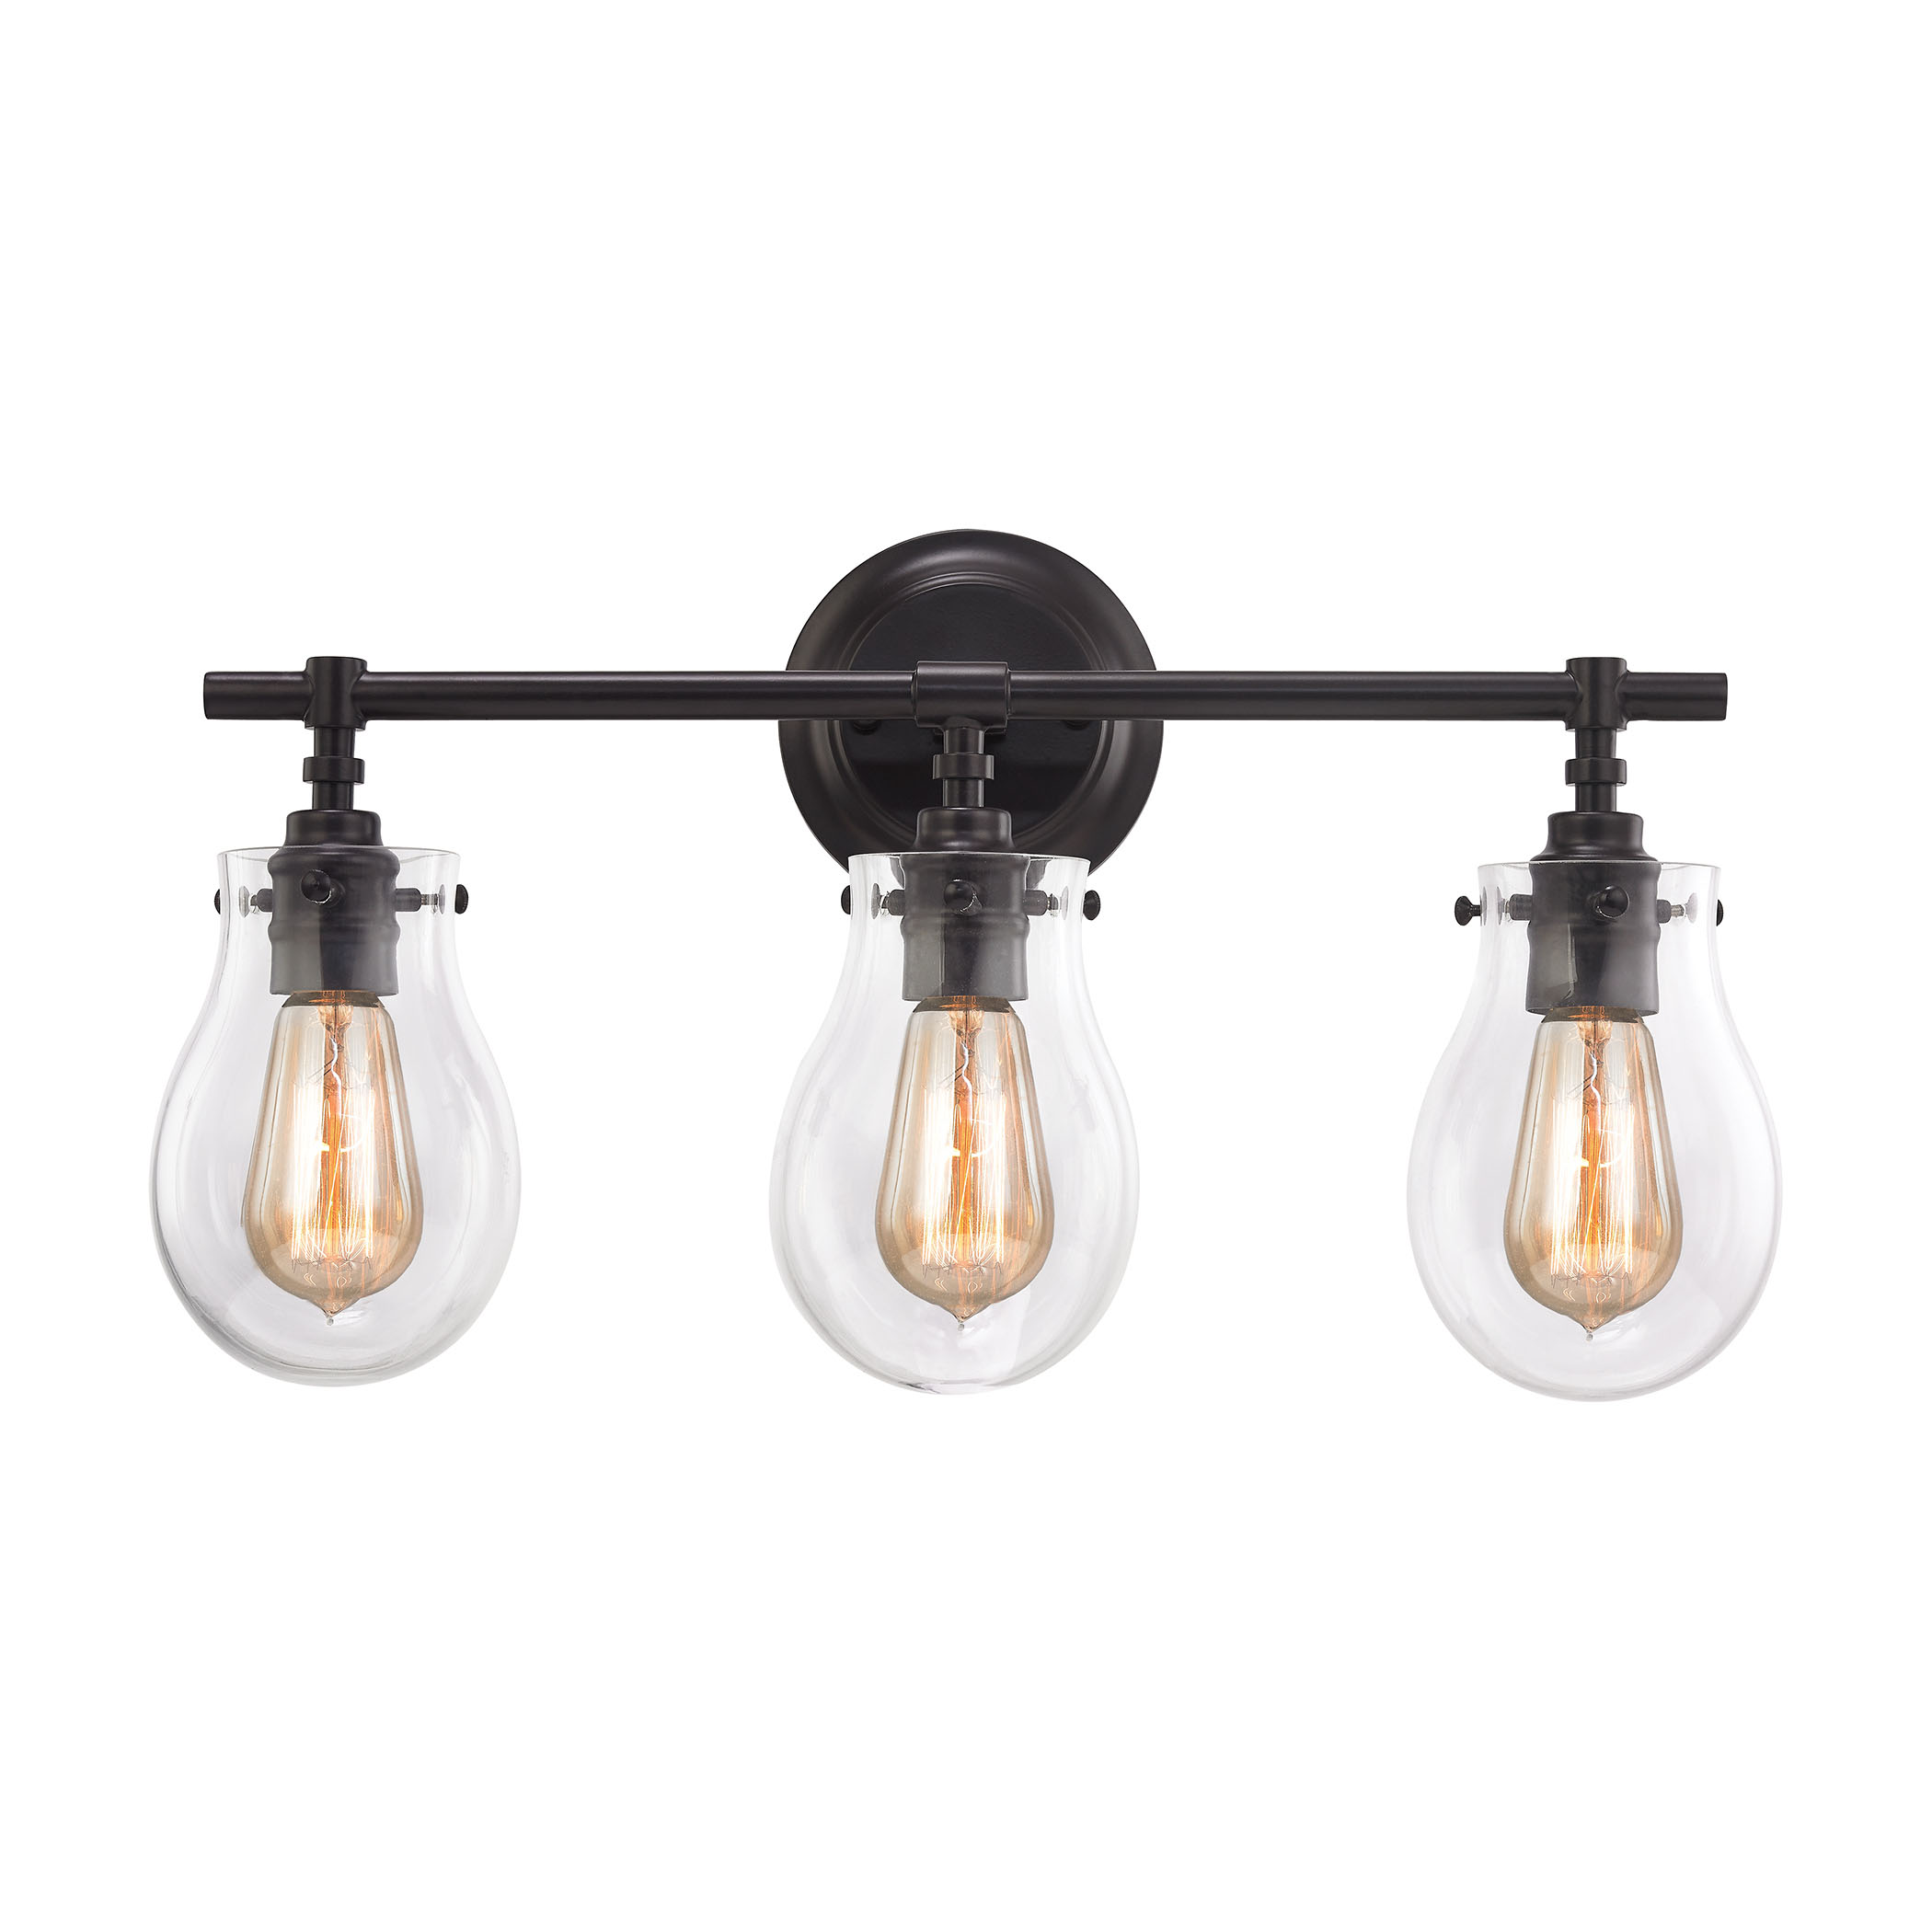 Bathroom Vanity Lights With Clear Glass Shades glass bathroom light fixtures. . 3light antique bronze vanity